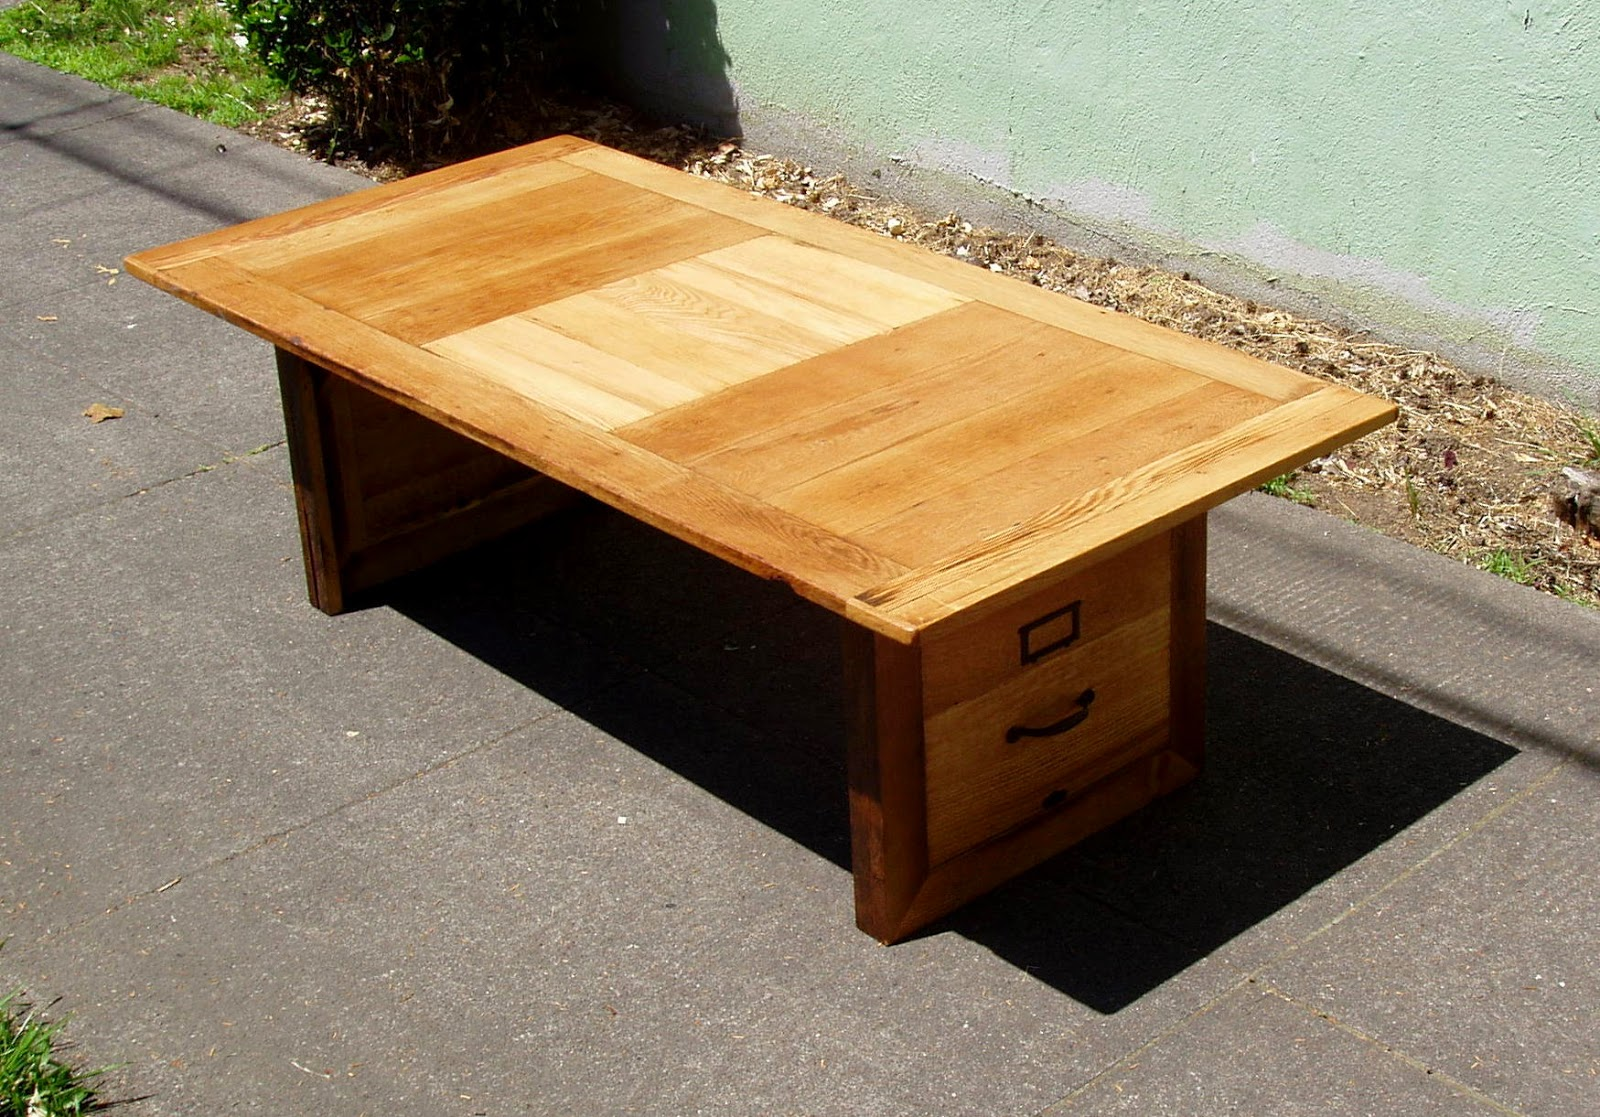 driftedge woodworking spring sale reclaimed wood coffee With reclaimed coffee table for sale